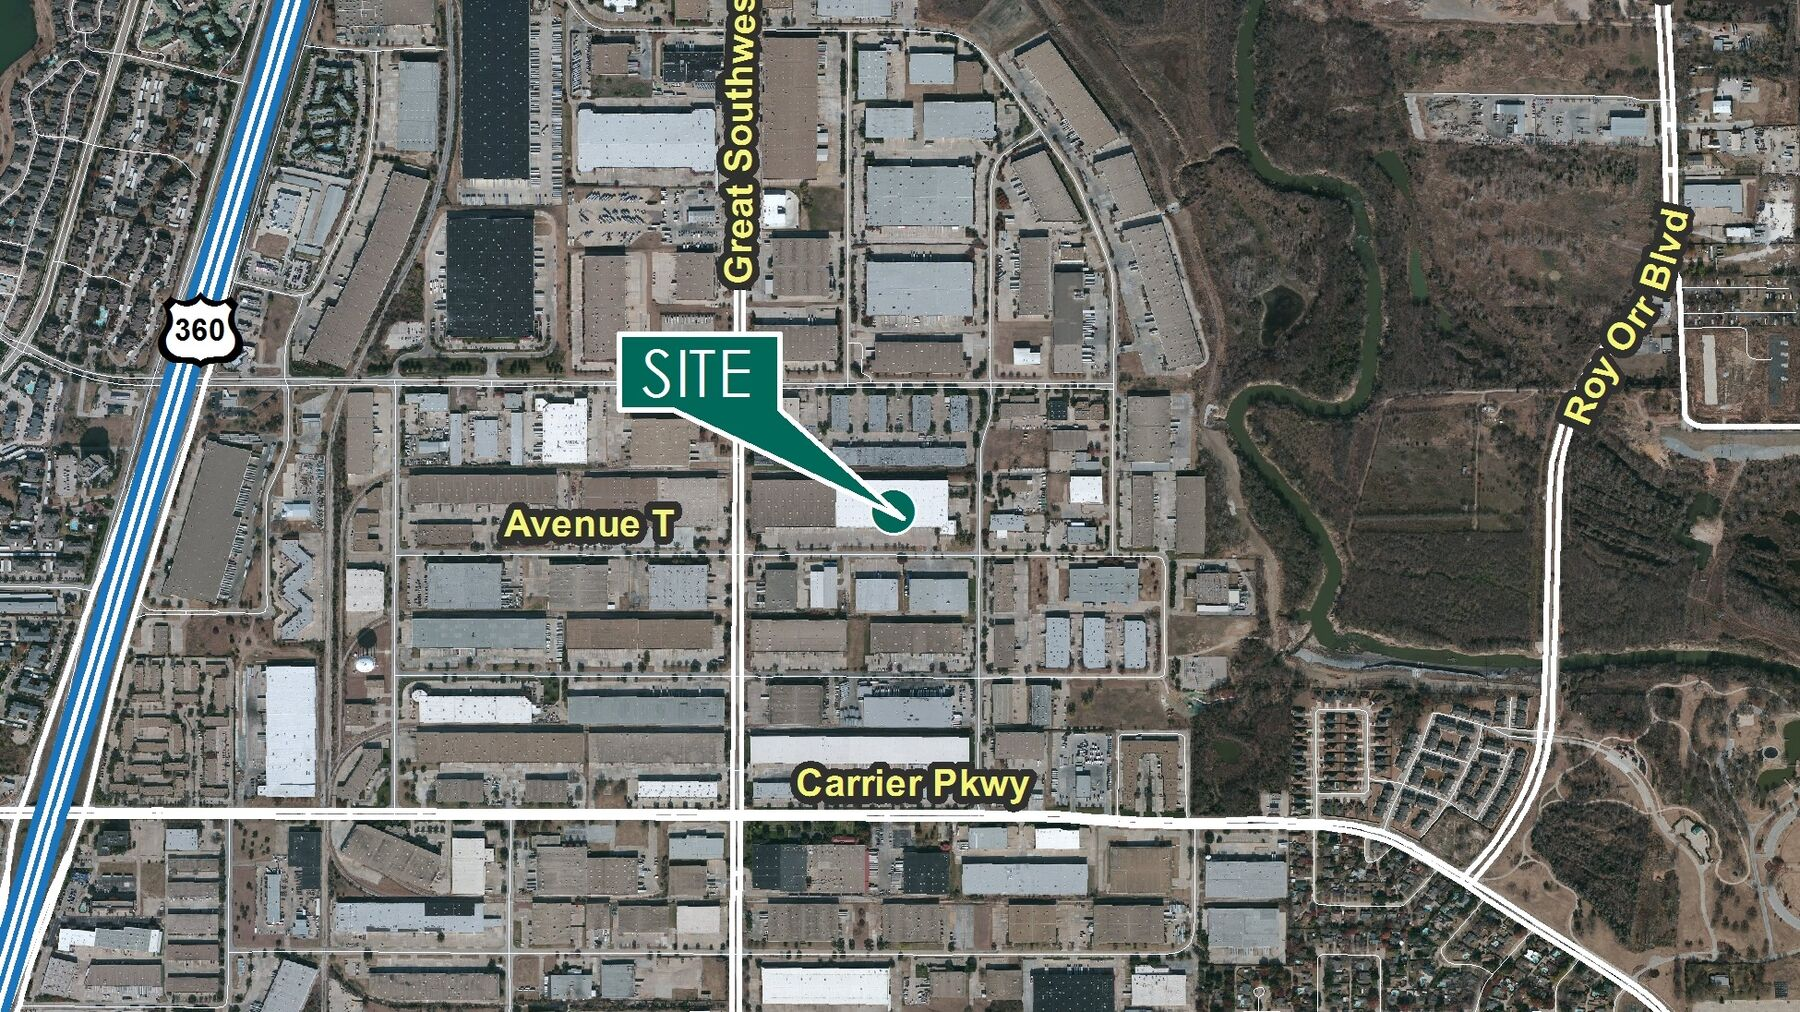 DPM-Prologis-Great-Southwest-4-DAL01704-1301-Avenue-T_AerialMap.jpg